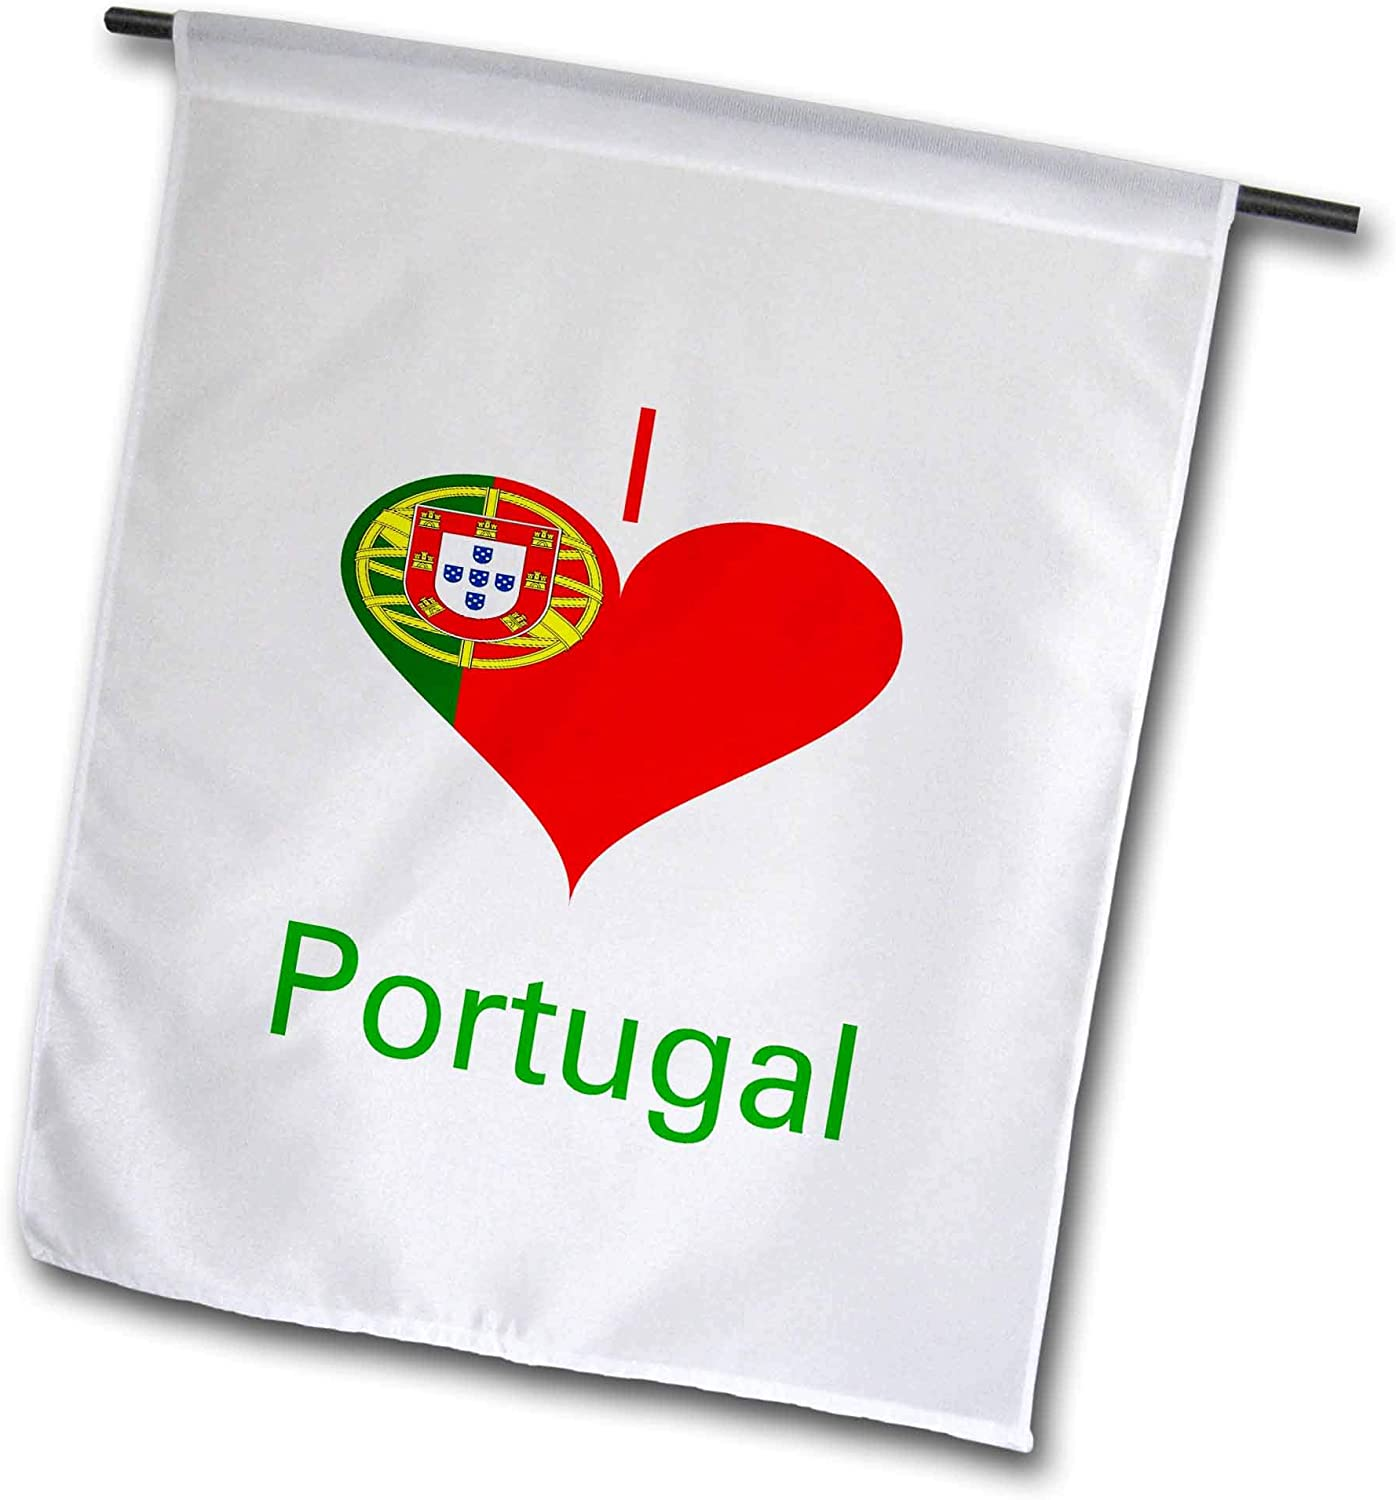 3dRose Lens Art by Florene - Coat of Arms in Heart - Image of I Love Portugal in Coat of Arms Heart - 12 x 18 inch Garden Flag (fl_304502_1)